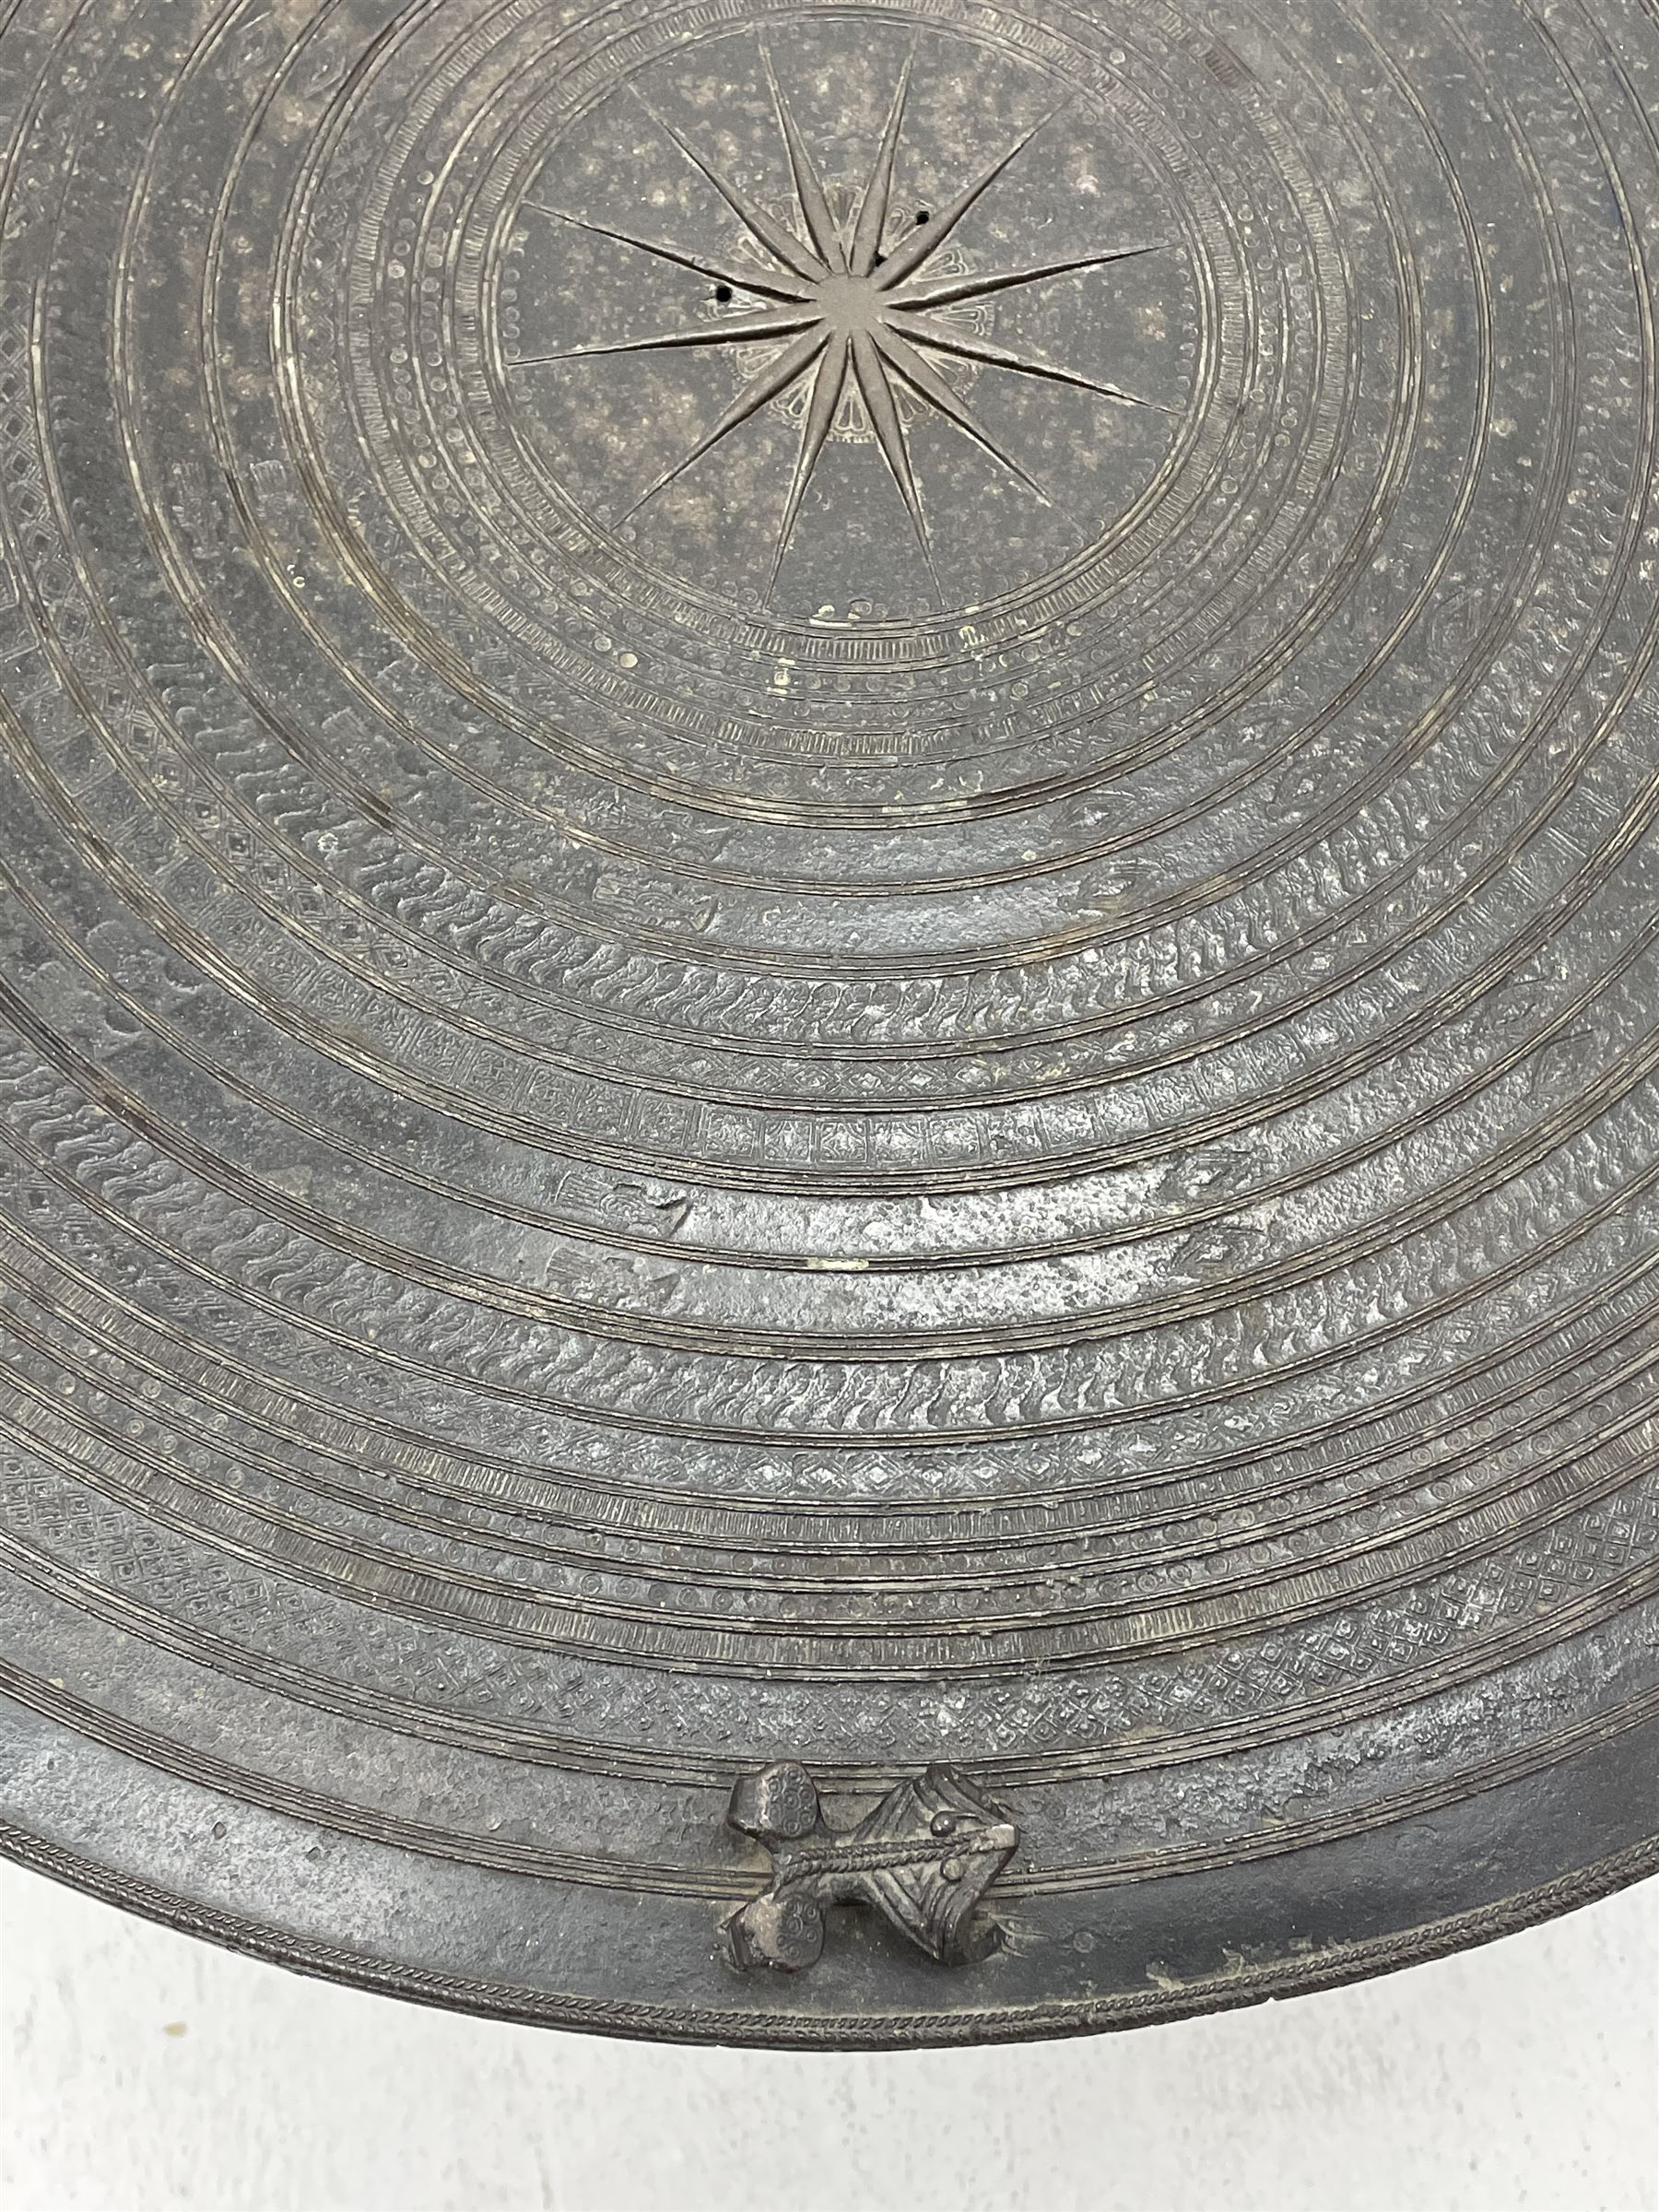 Dong Son style Southeast Asian bronze rain drum - Image 2 of 8